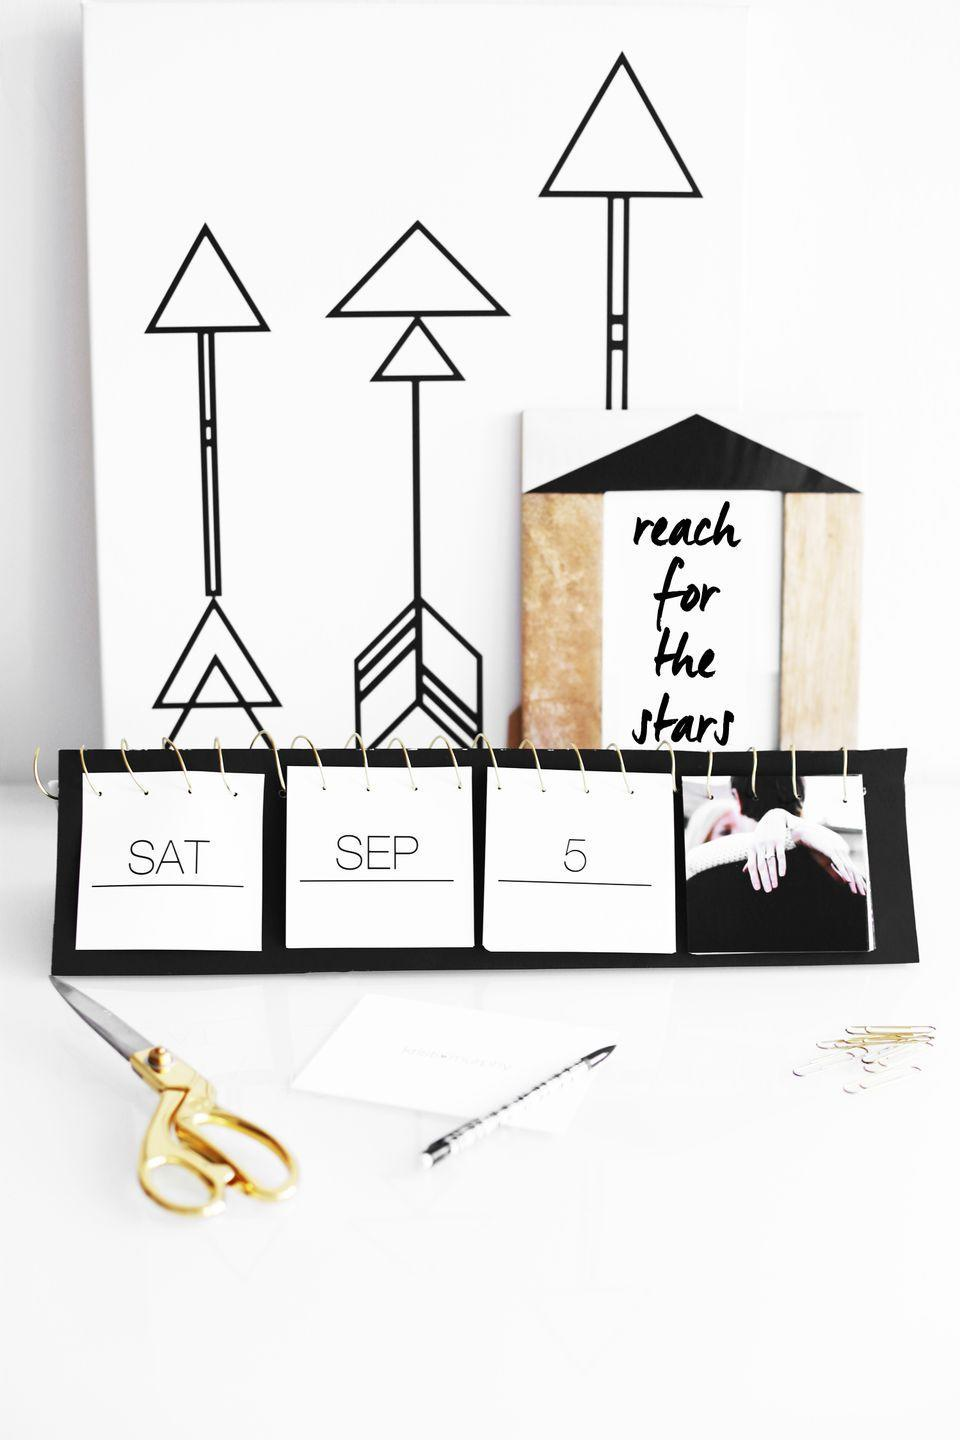 "<p>Put your Instagram sleuthing skills to work by browsing through your siblings' profiles until you find a dozen photos that mom will love for this desk-friendly calendar.</p><p><em><a href=""https://www.kristimurphy.com/blog/diy-instagram-calendar"" rel=""nofollow noopener"" target=""_blank"" data-ylk=""slk:Get the tutorial at Kristi Murphy »"" class=""link rapid-noclick-resp"">Get the tutorial at Kristi Murphy »</a></em></p>"